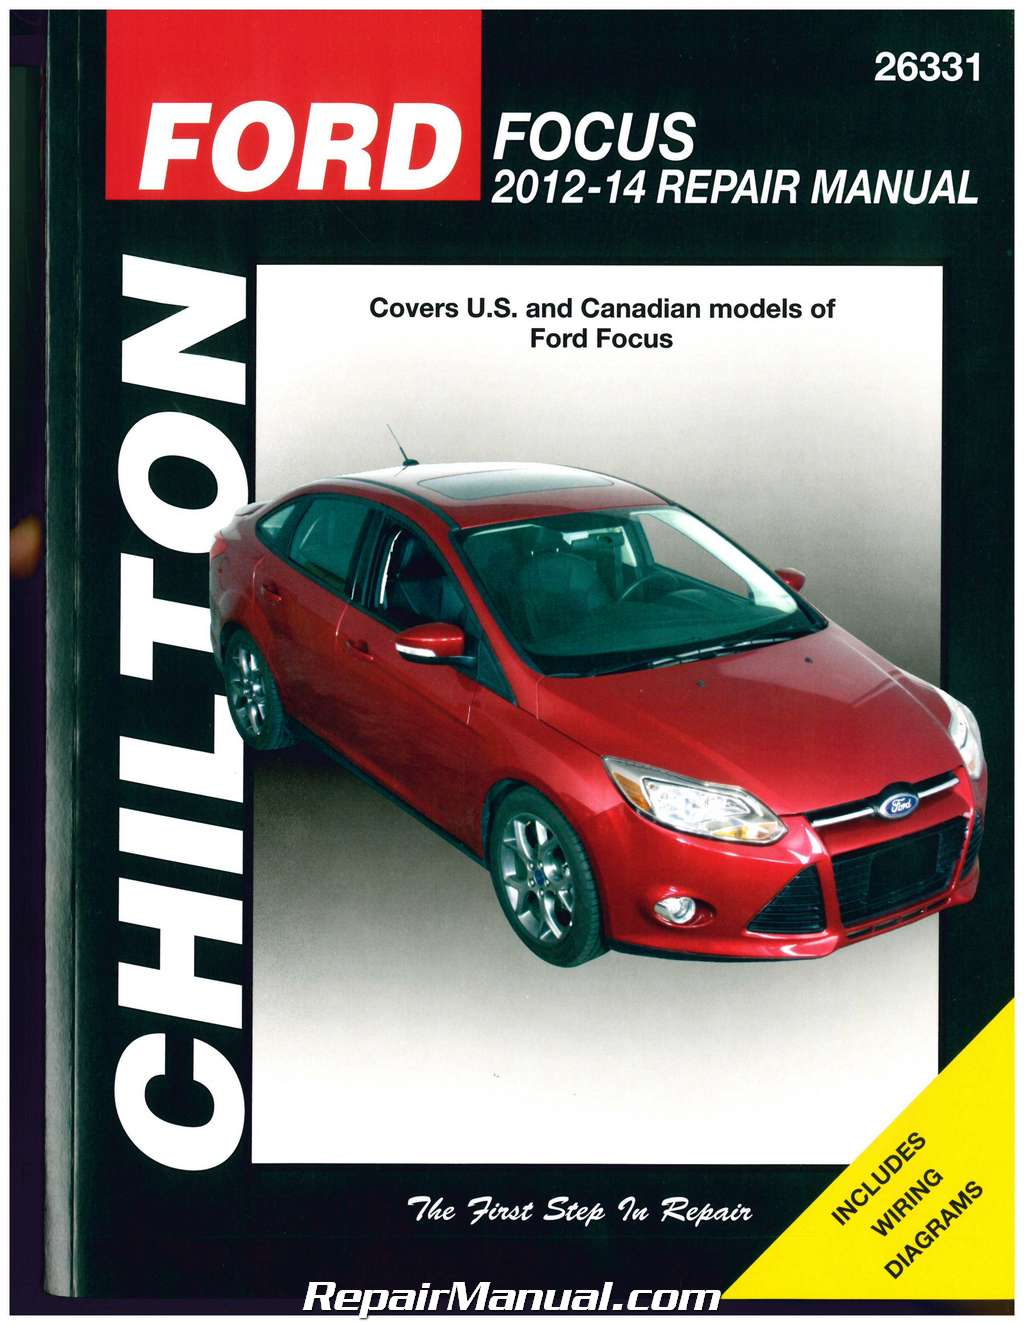 ford focus 2012 2013 2014 chilton automotive repair manual rh repairmanual com repair manual ford focus c-max repair manual ford focus 2006